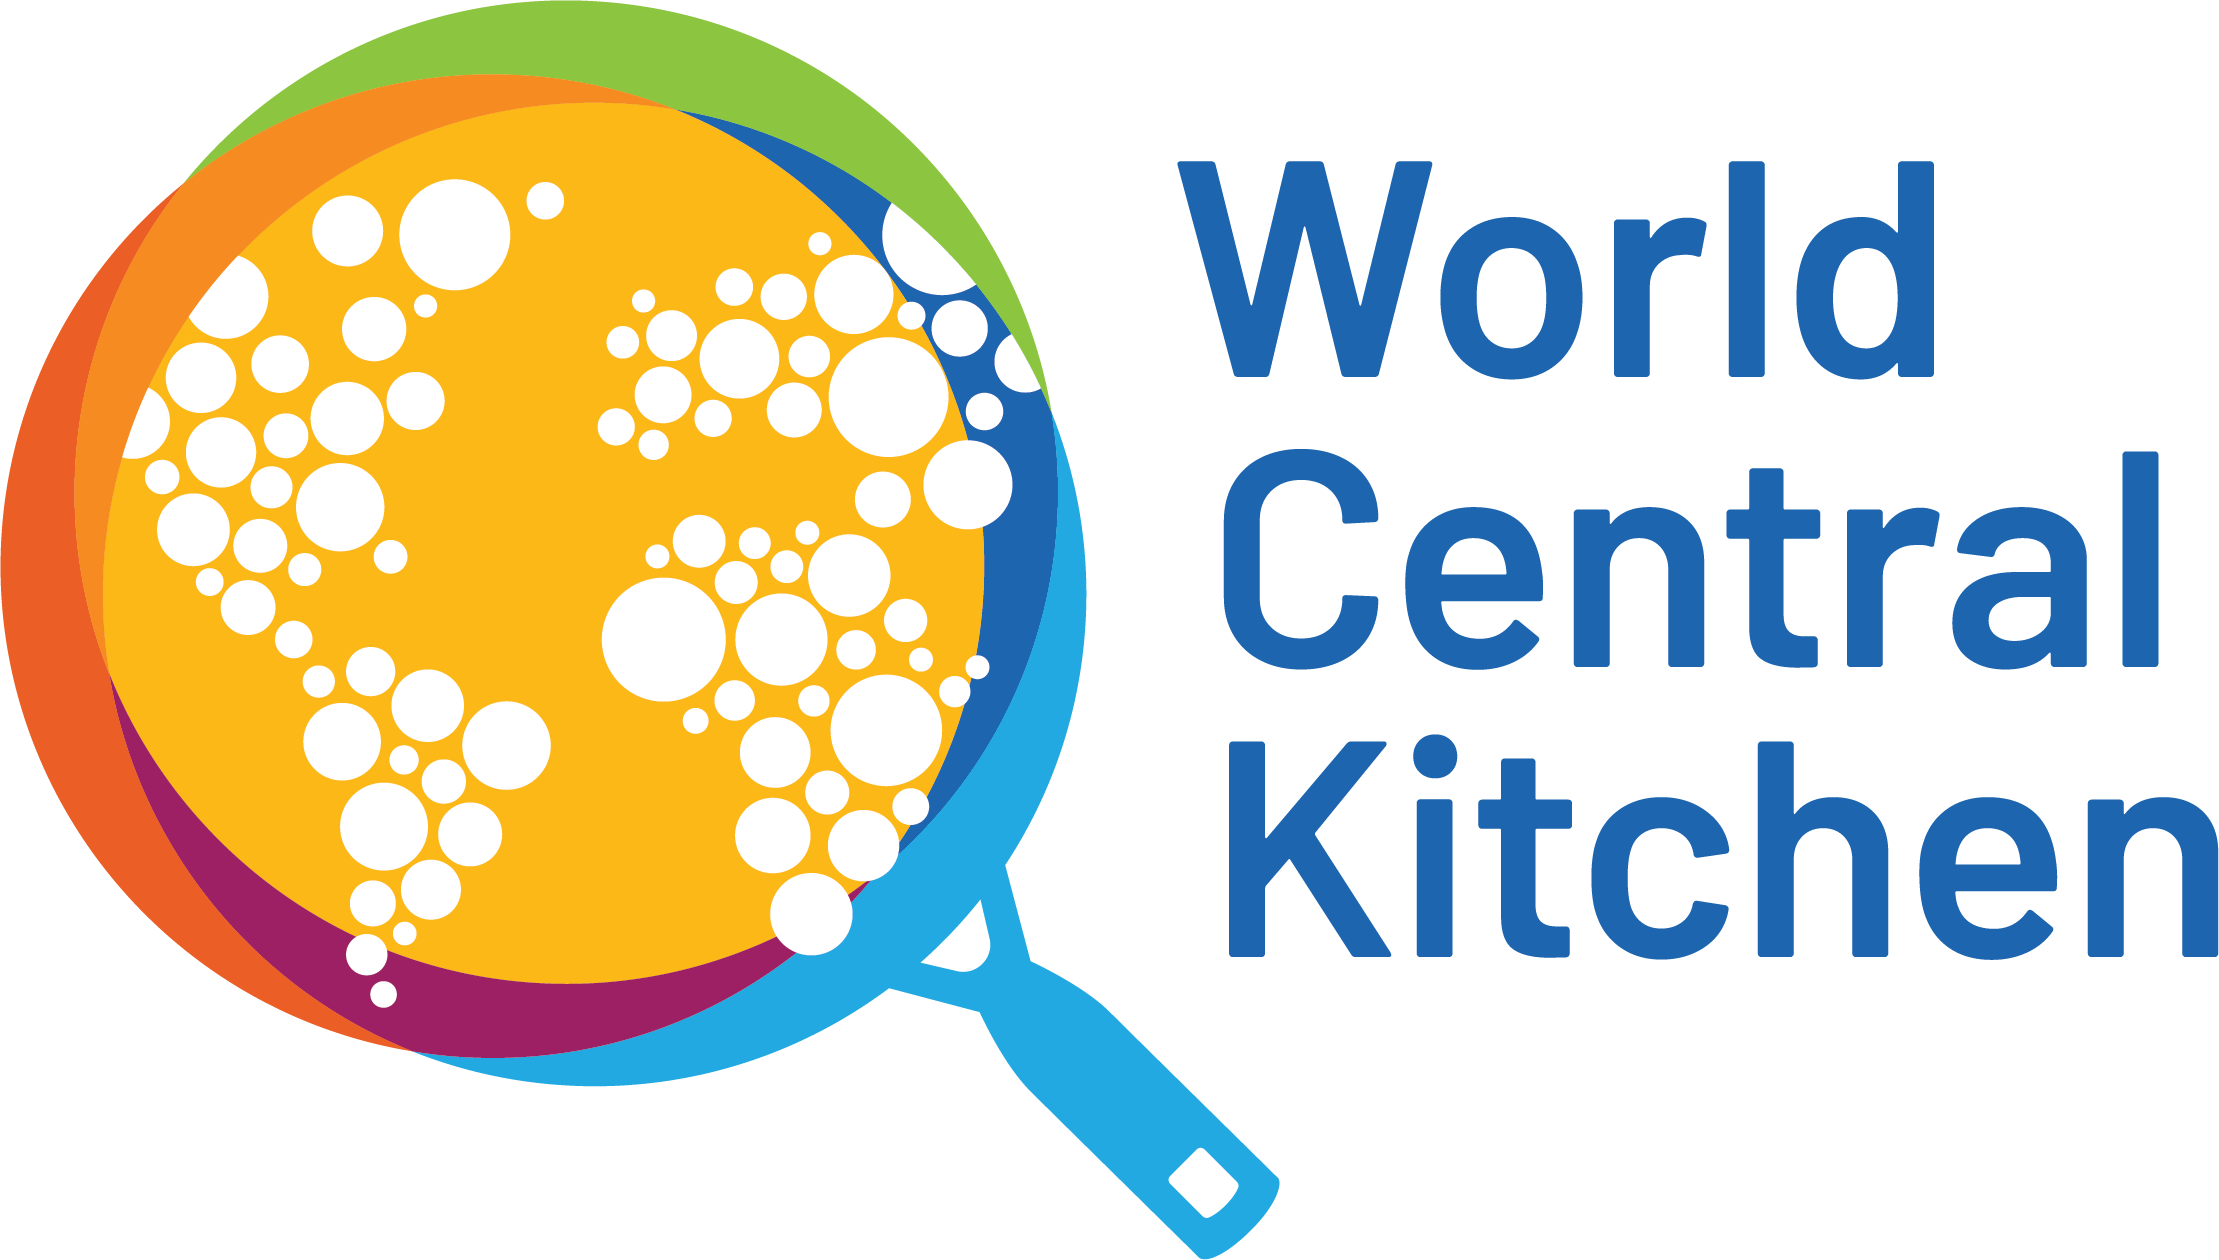 World Central Kitchen logotype